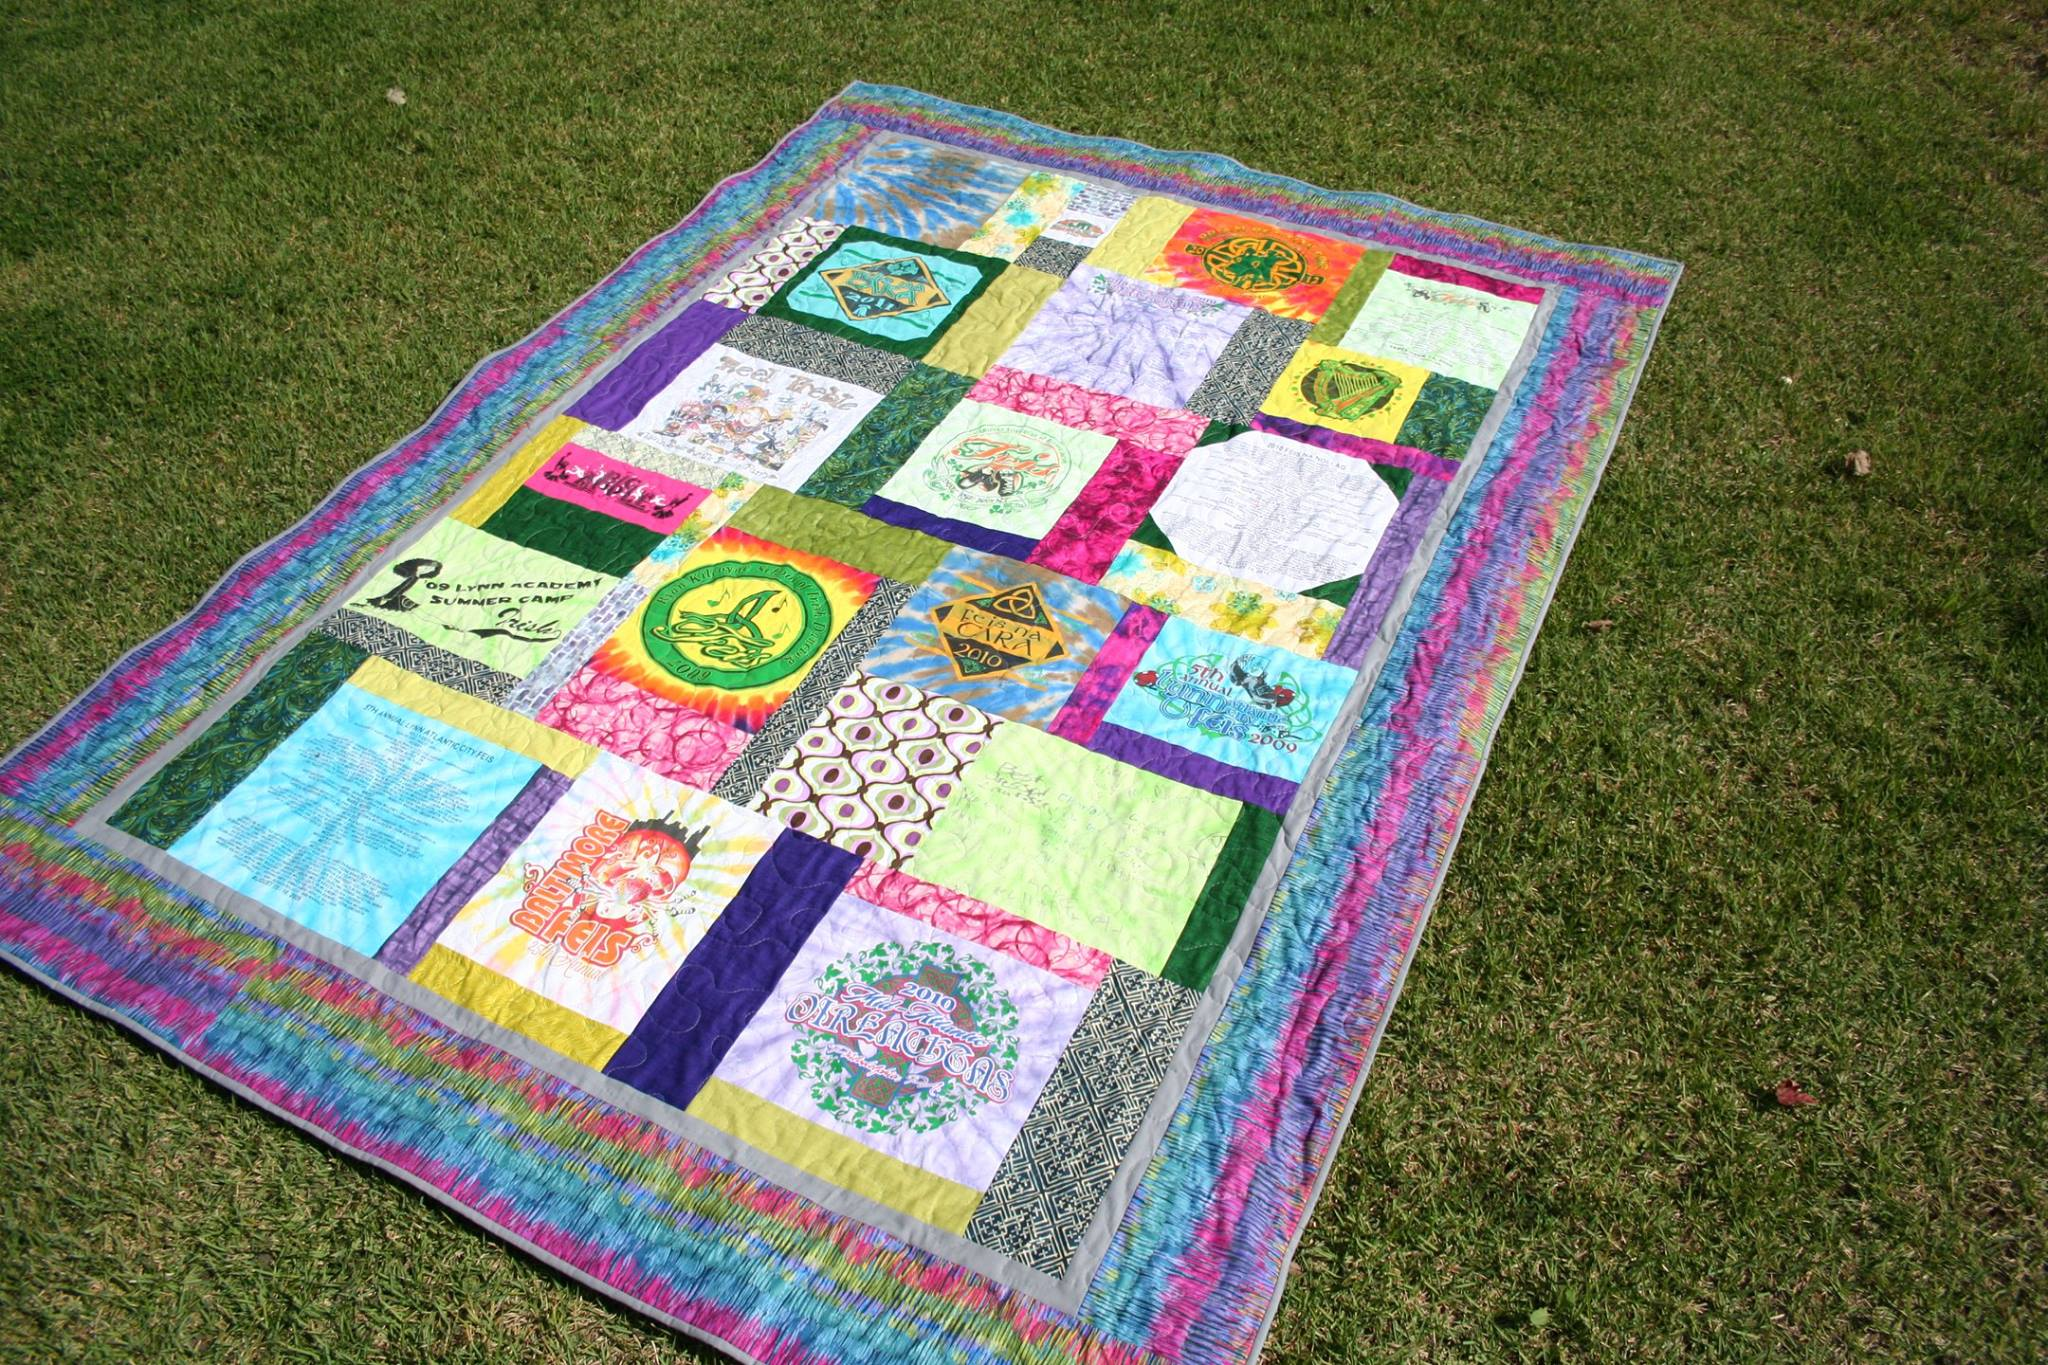 T-shirt quilt featuring Irish dance shirts with lots of pink, purple, and blue